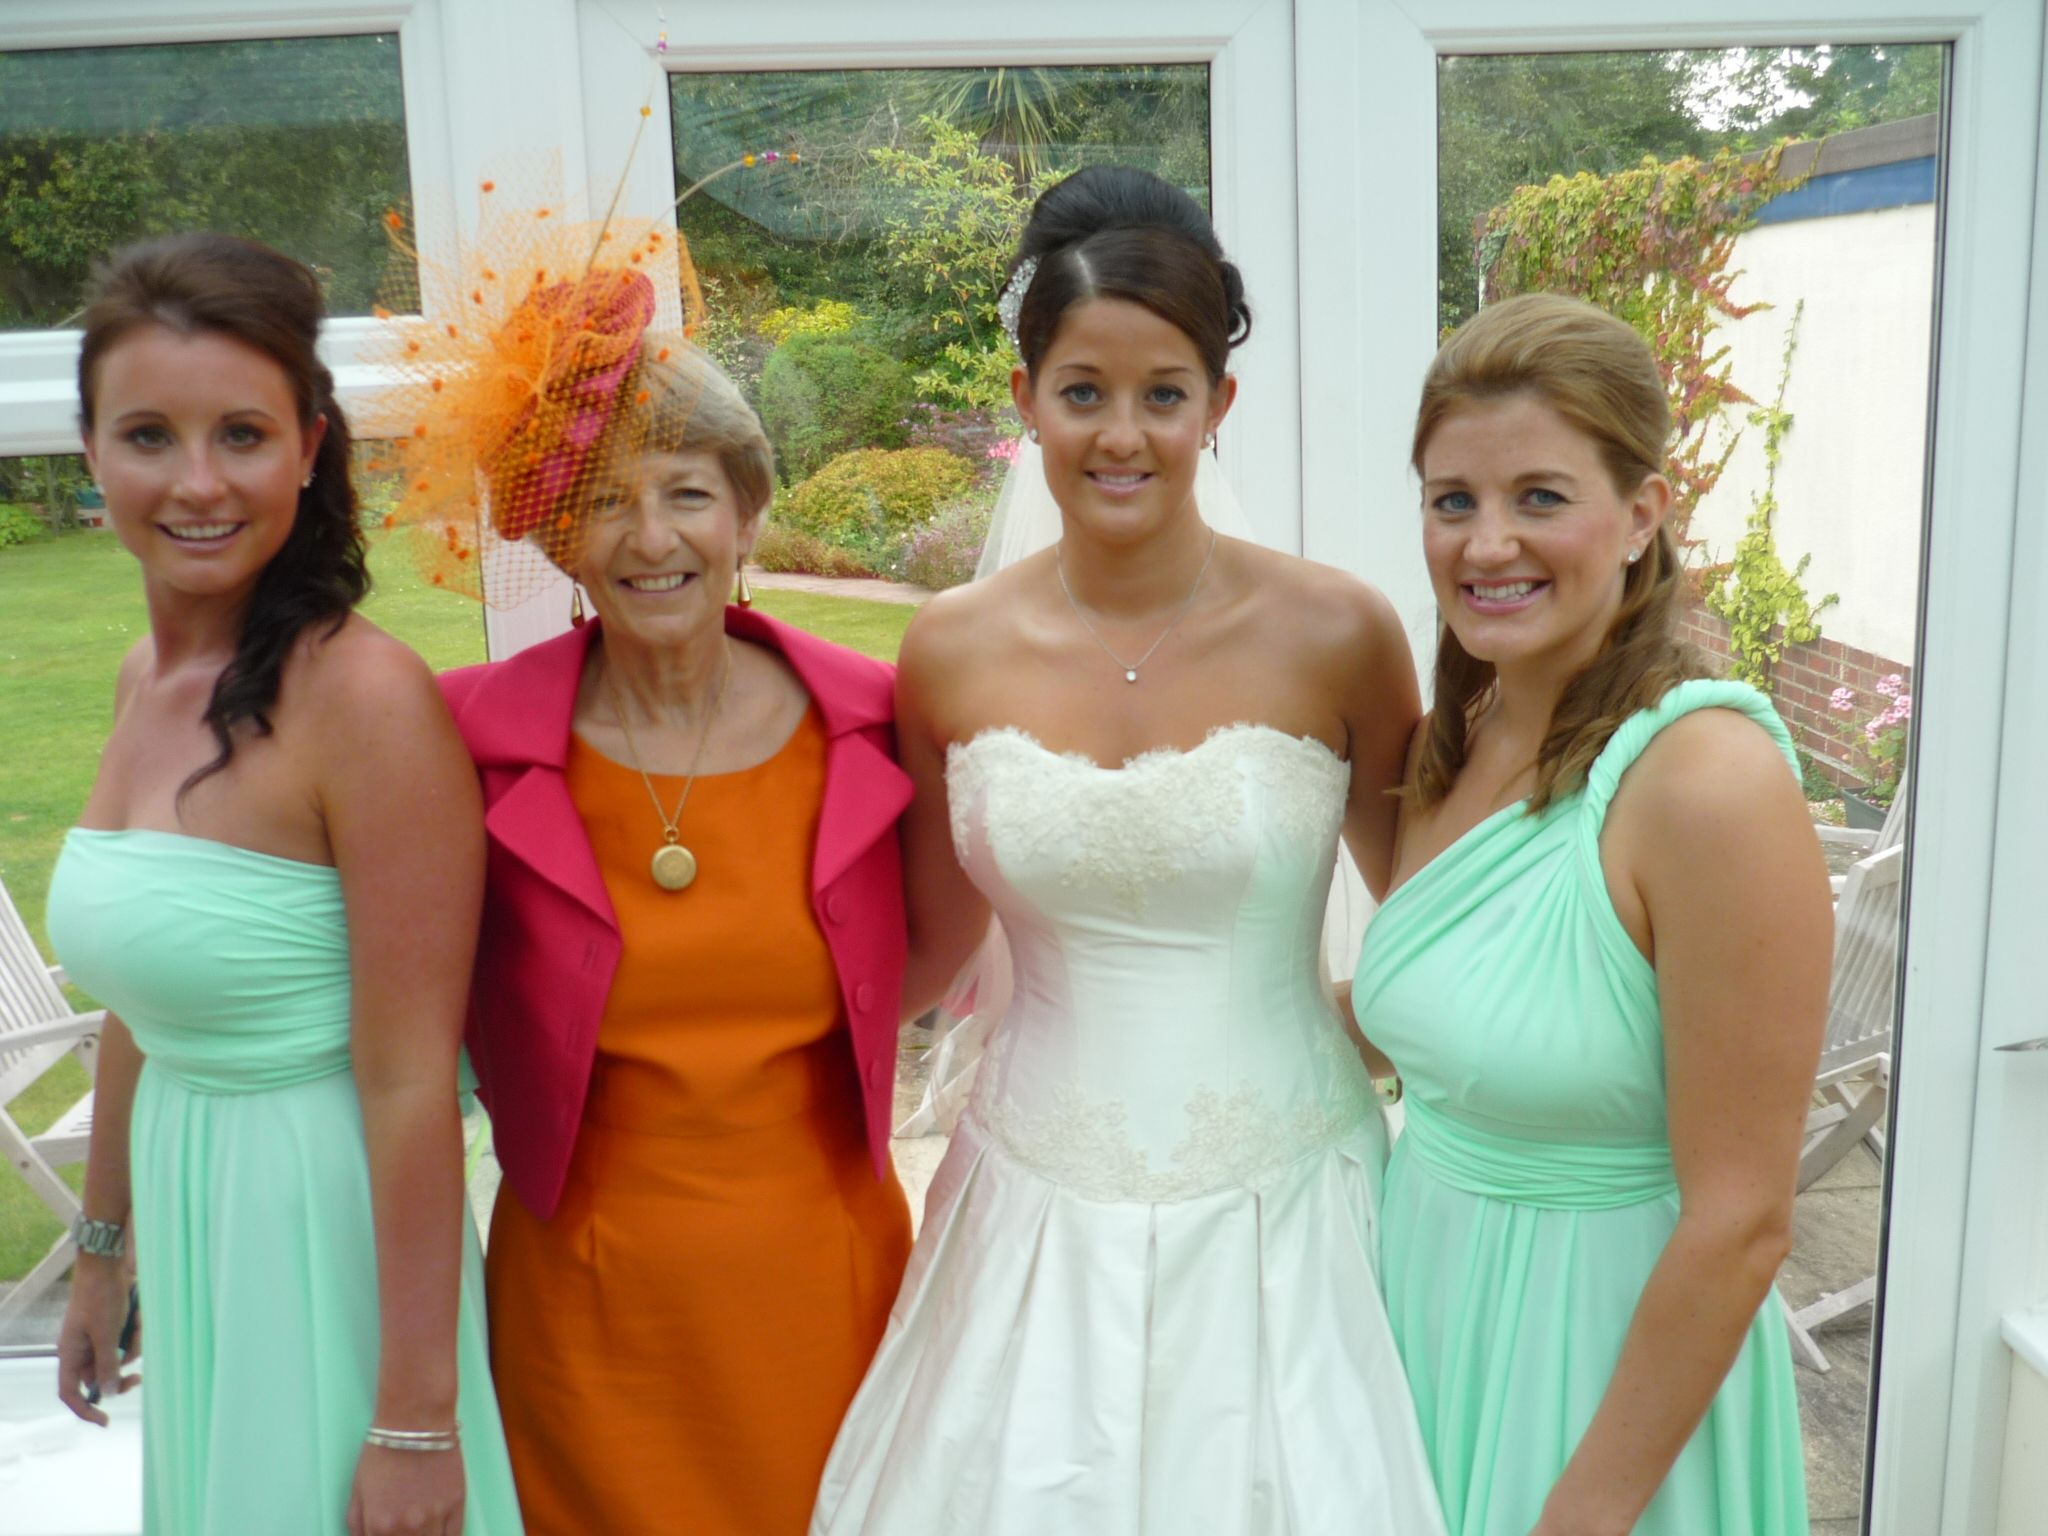 Two birds bridesmaid dresses bridesmaids pinterest two birds bridesmaid dresses ombrellifo Image collections